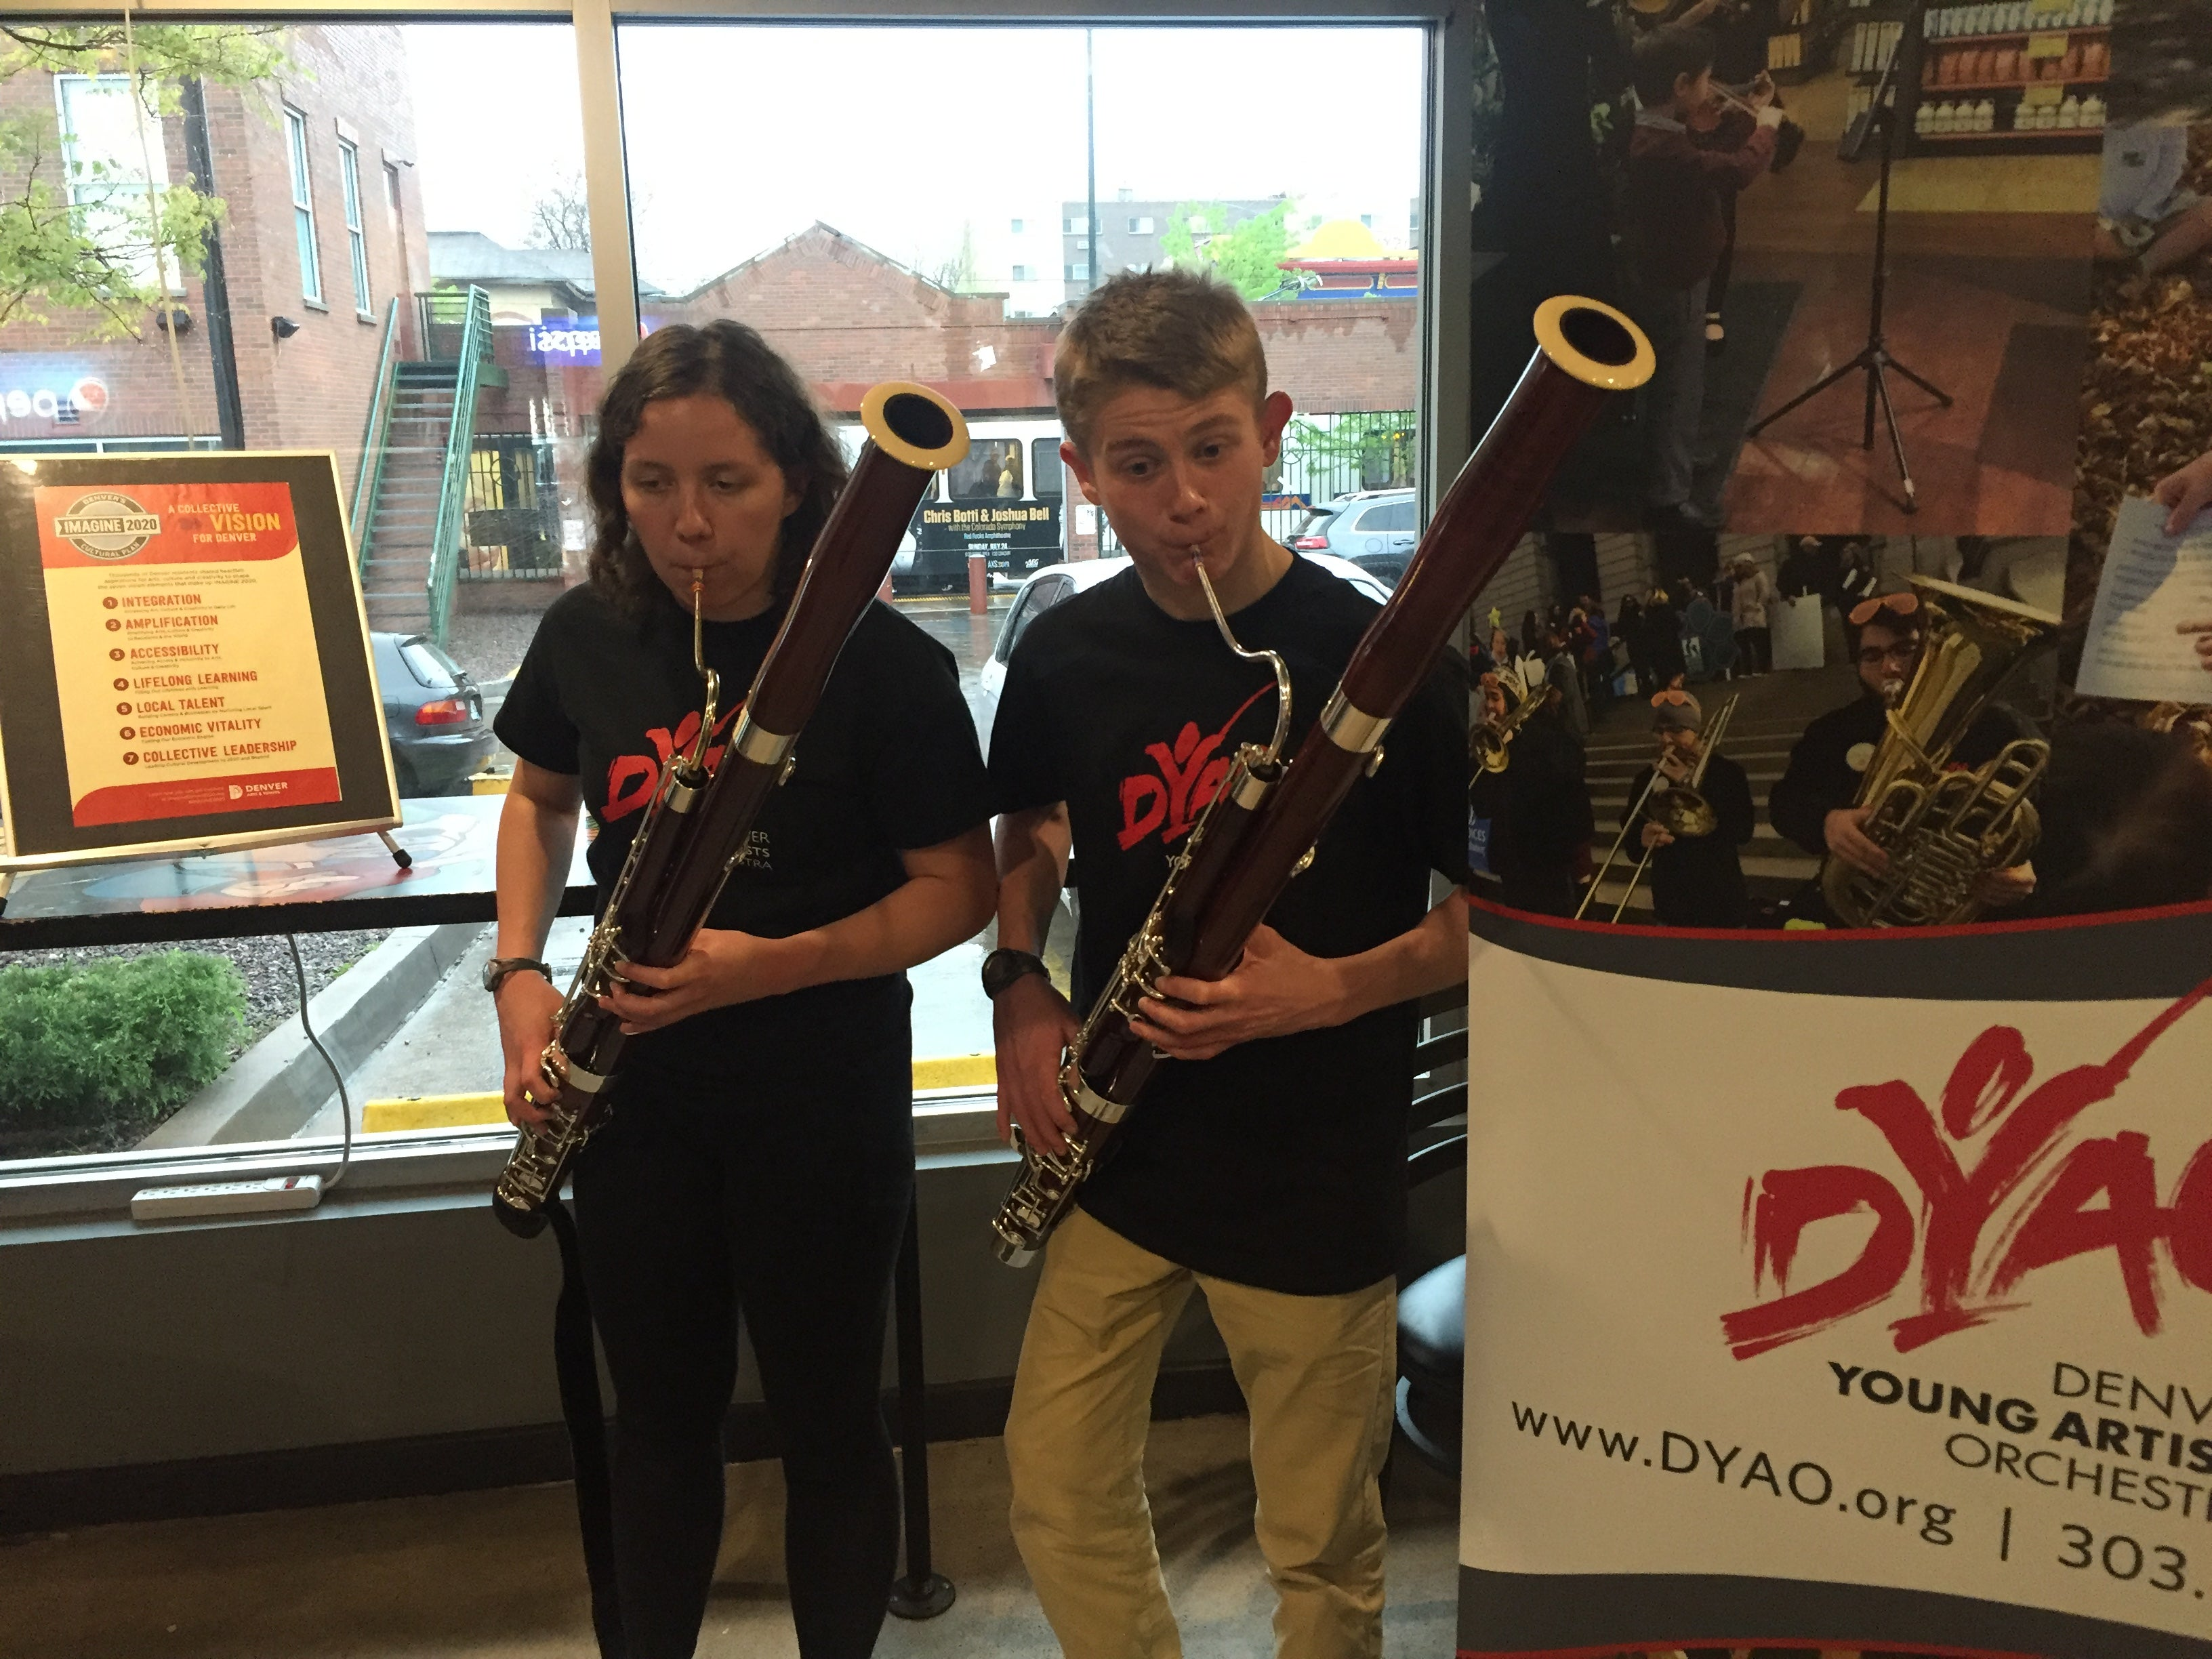 DYAO_Students_play_at_Fat_Jacks_in_Five_Points-3cc19bde06.JPG